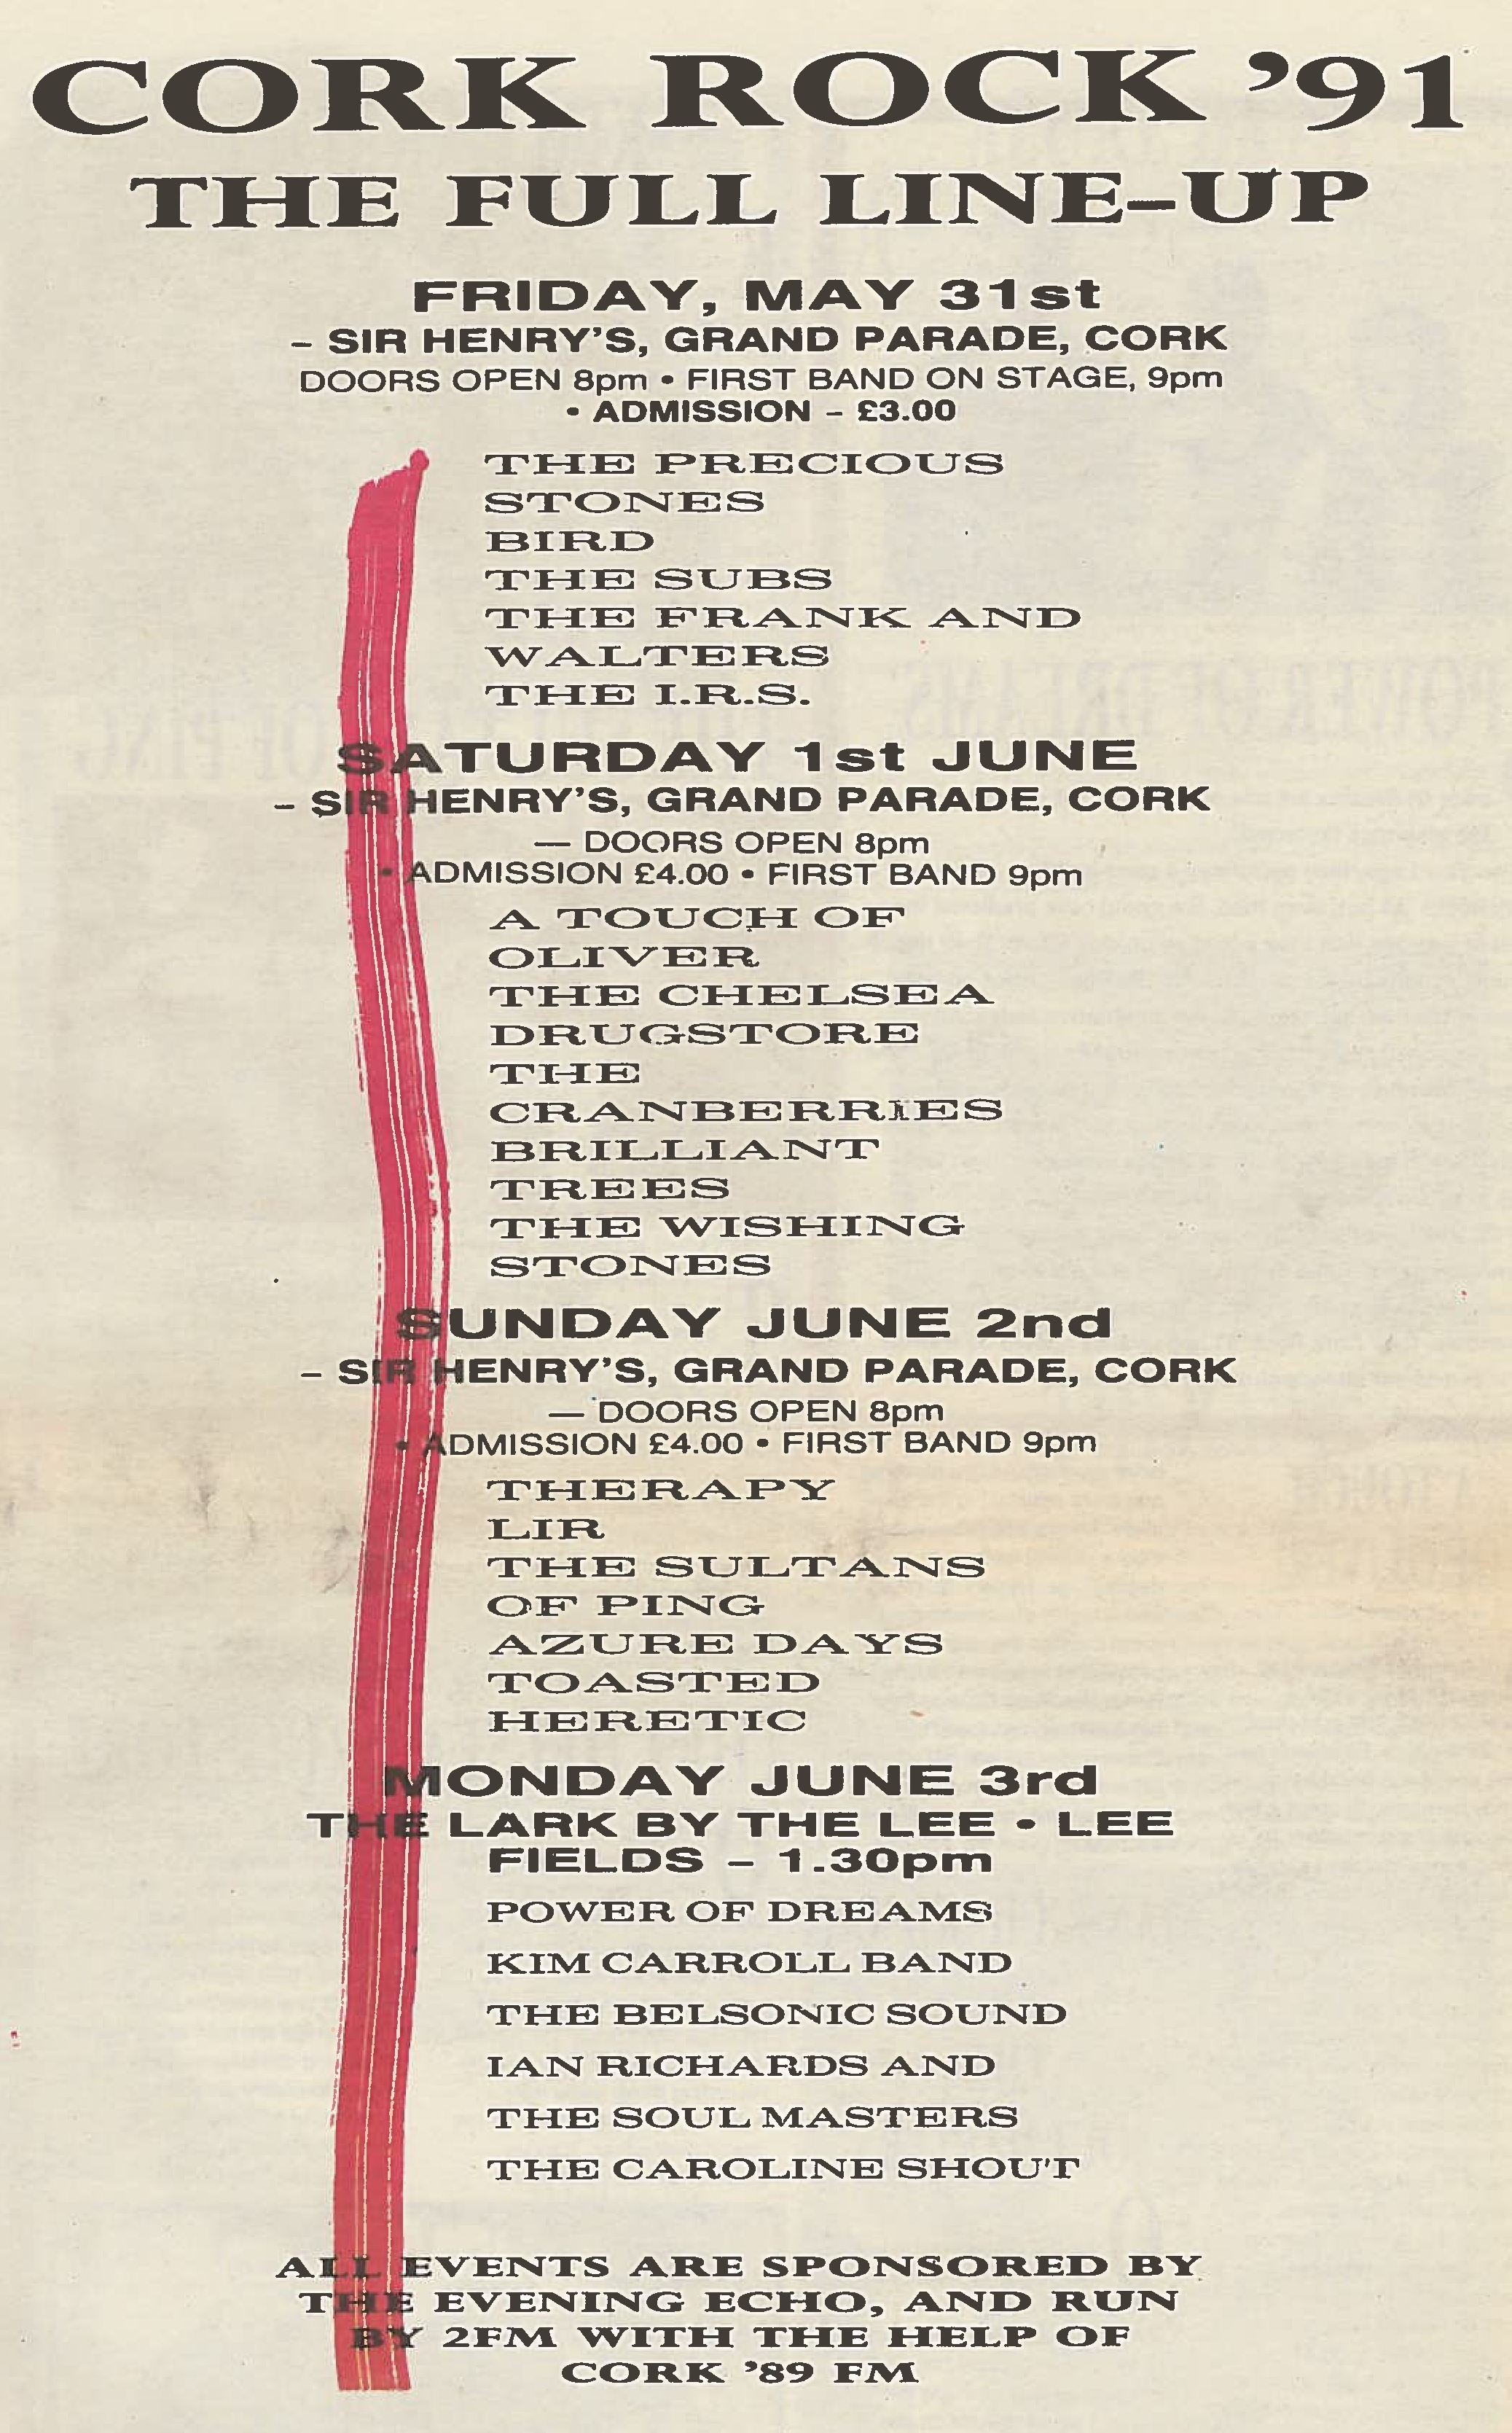 Hot Press Cork Rock 91 - full line up.jpg